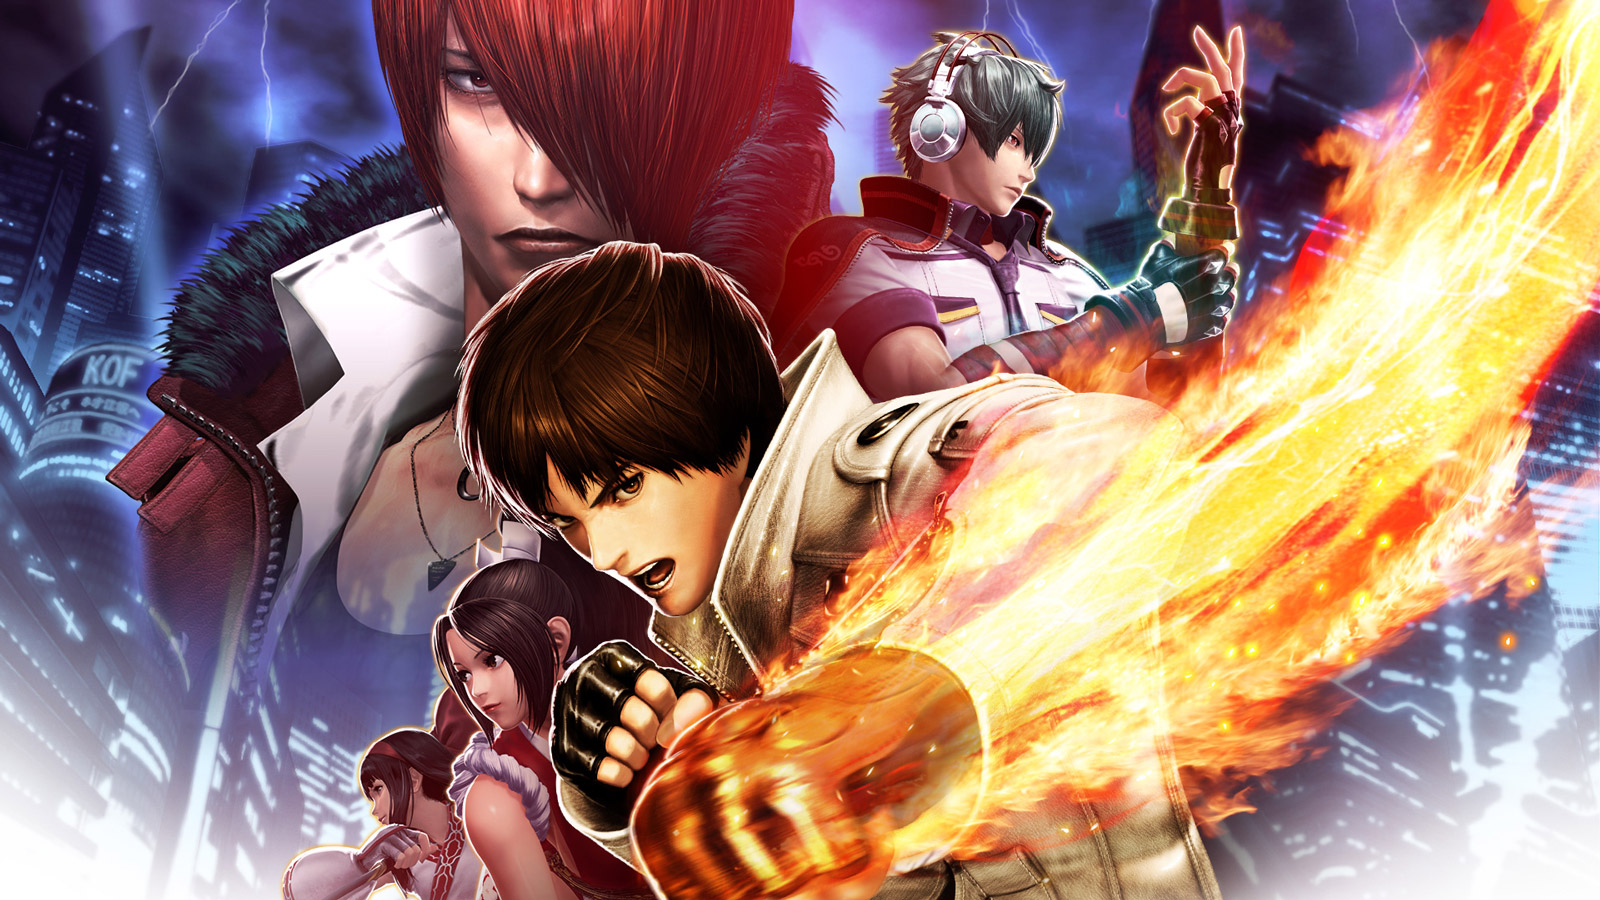 Free The King of Fighters XIV Wallpaper in 1600x900